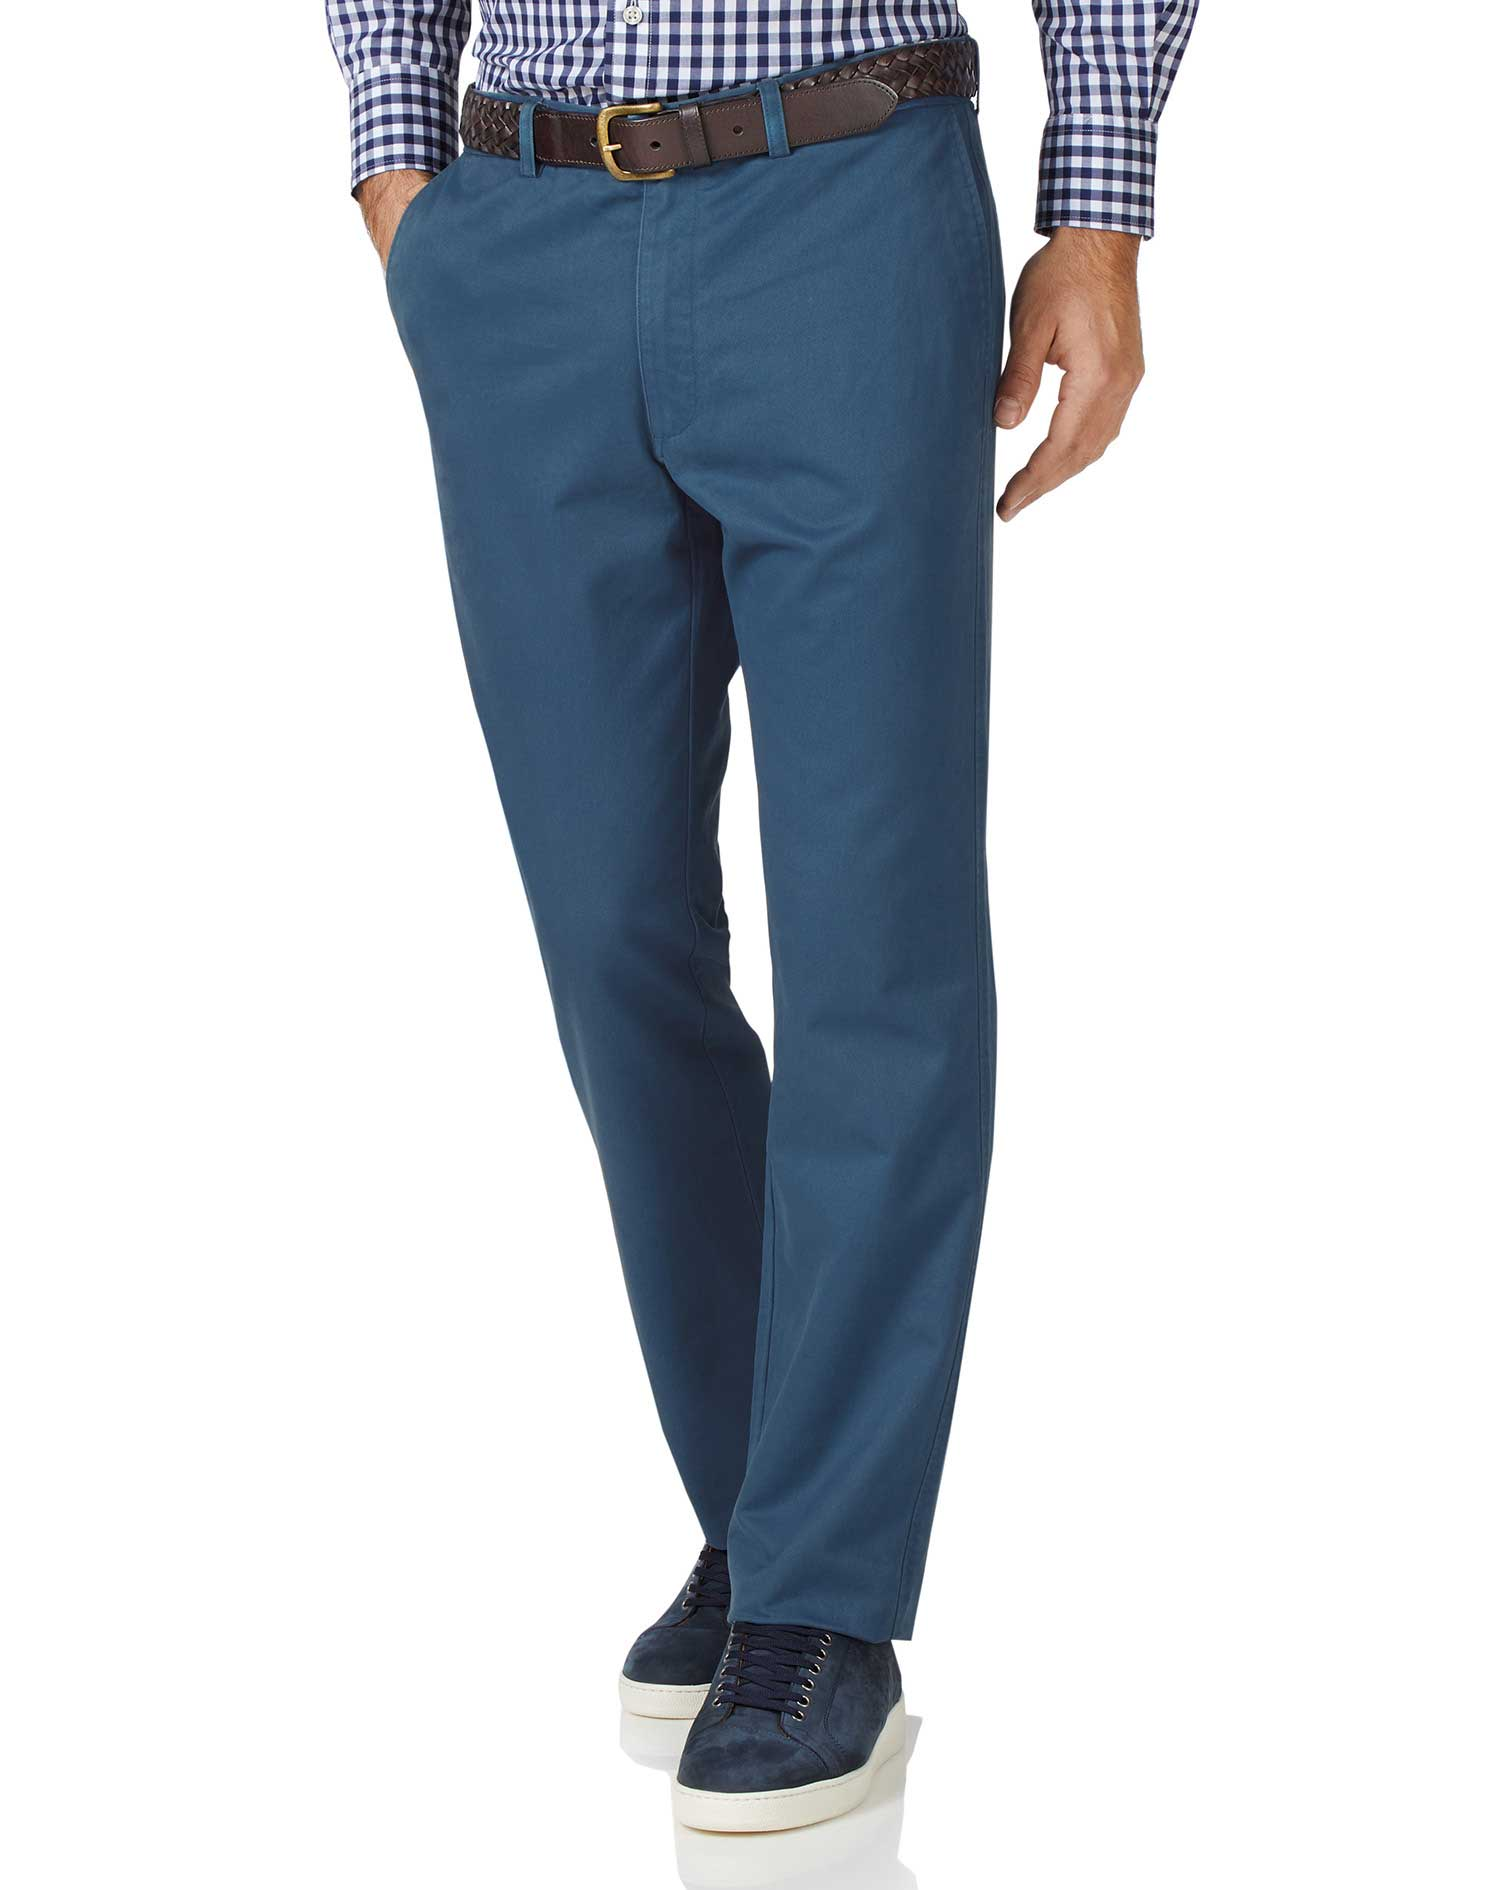 Bright Blue Slim Fit Flat Front Washed Cotton Chino Trousers Size W30 L32 by Charles Tyrwhitt